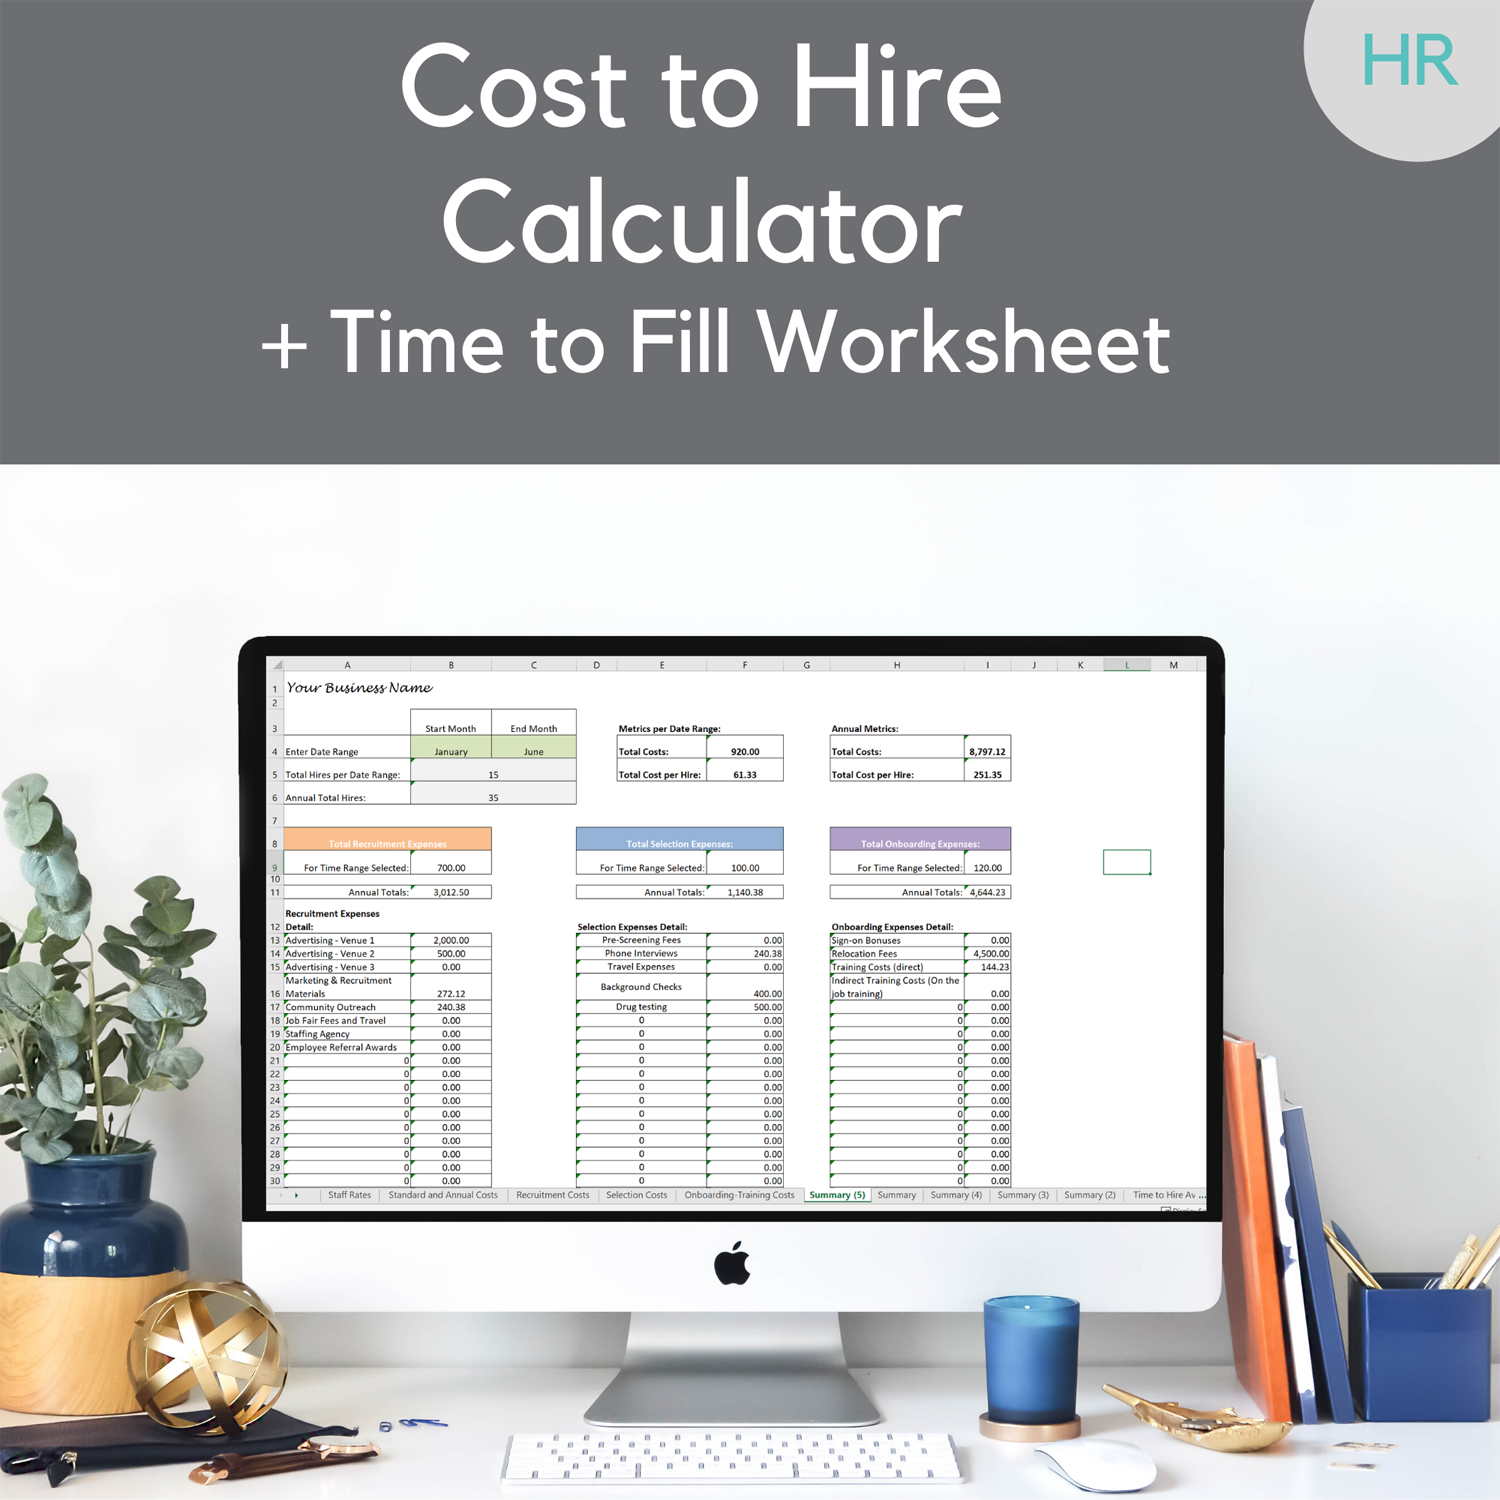 Cost to Hire Worksheet Template-w